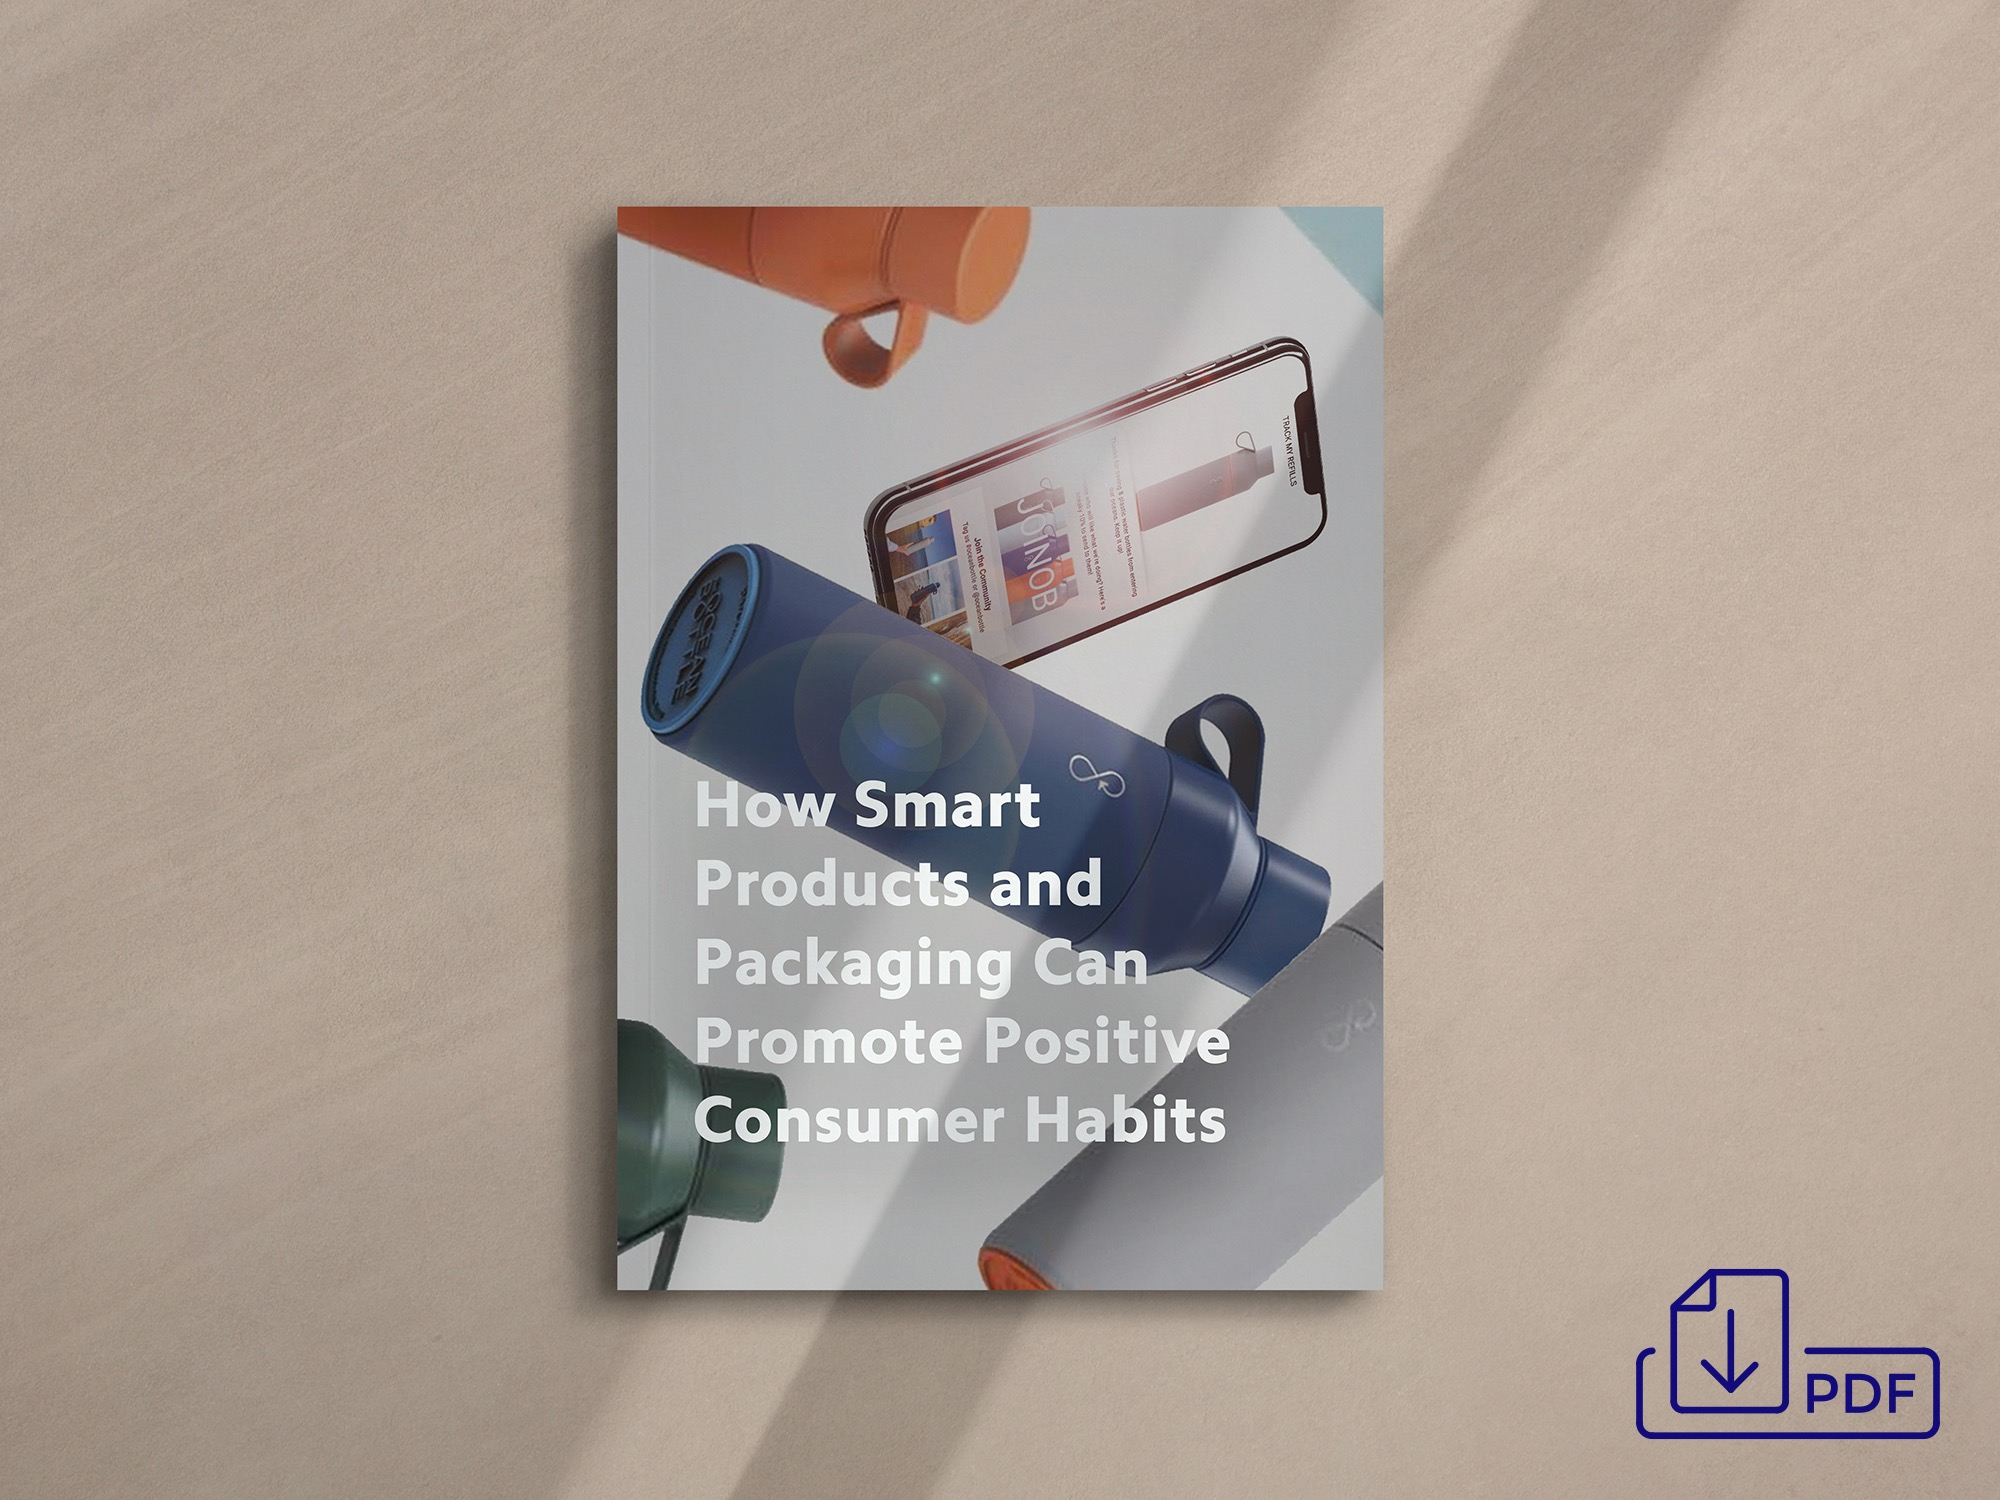 Get the Smart Products and Packaging PDF